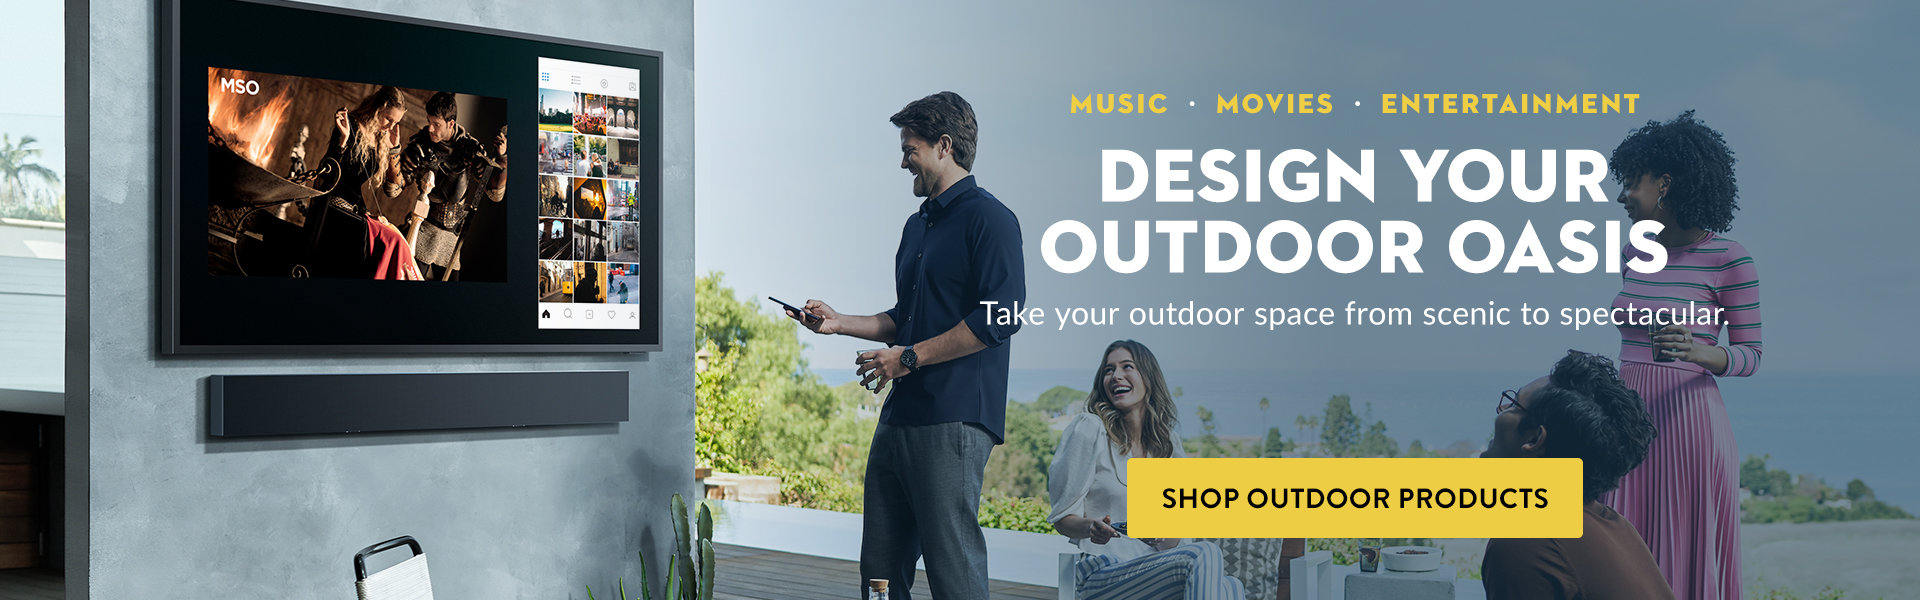 Shop outdoor speakers, tvs, and more